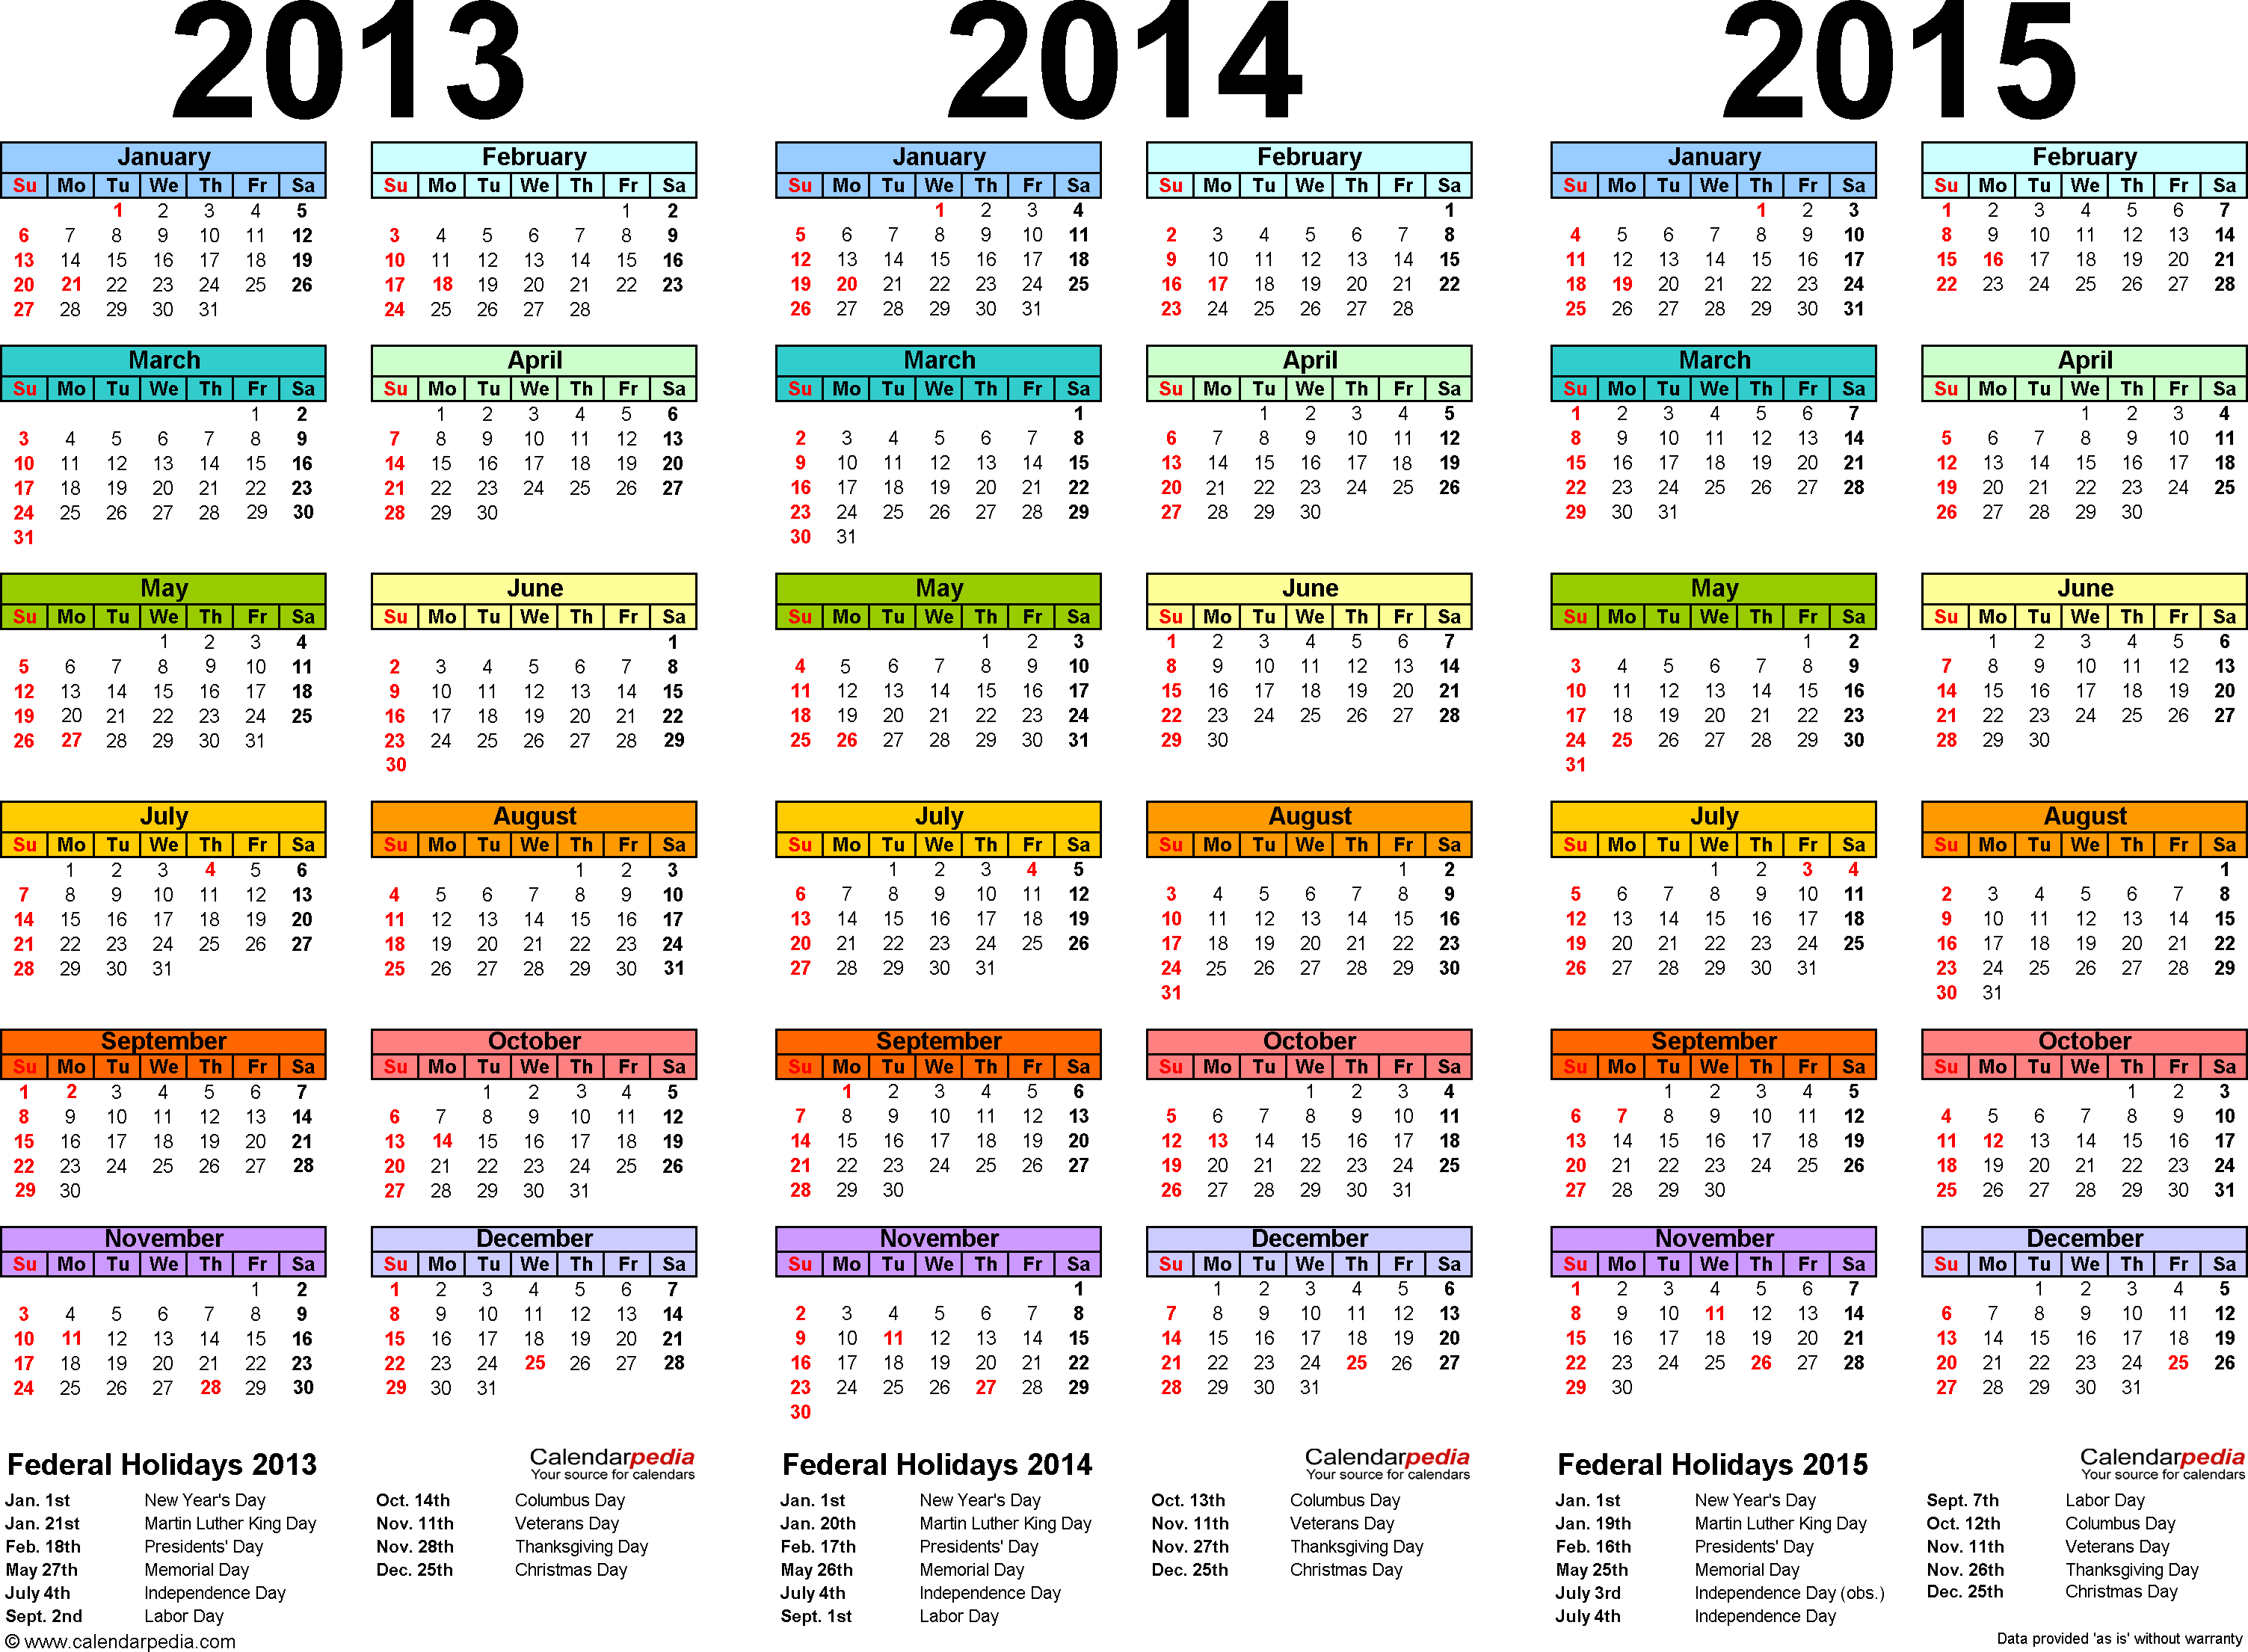 Template 1: Word template for three year calendar 2013-2015 (landscape orientation, 1 page, in color)